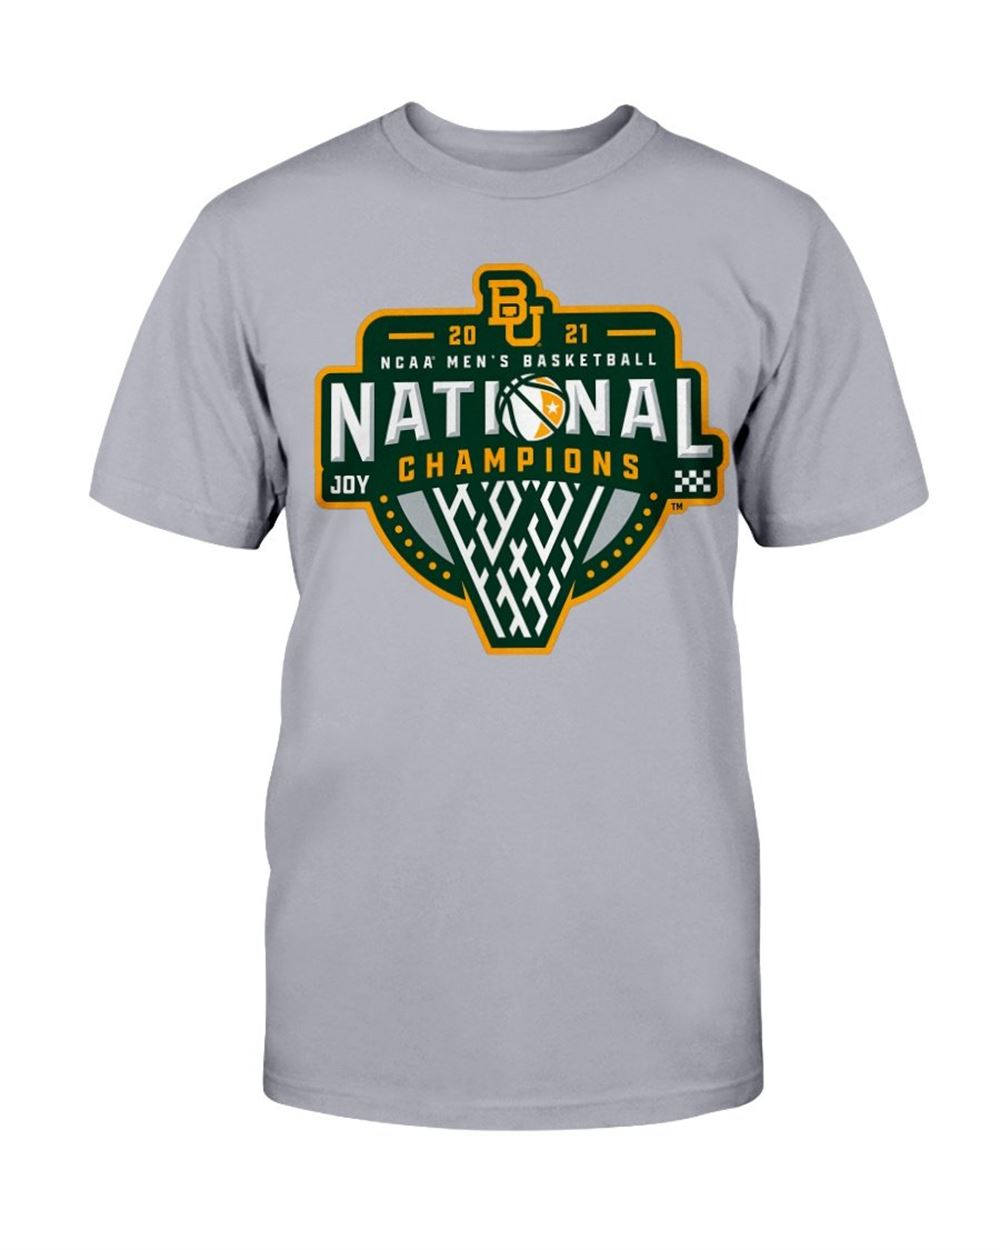 Awesome T-shirt National Champions Triple Threat Shirt So Incredible